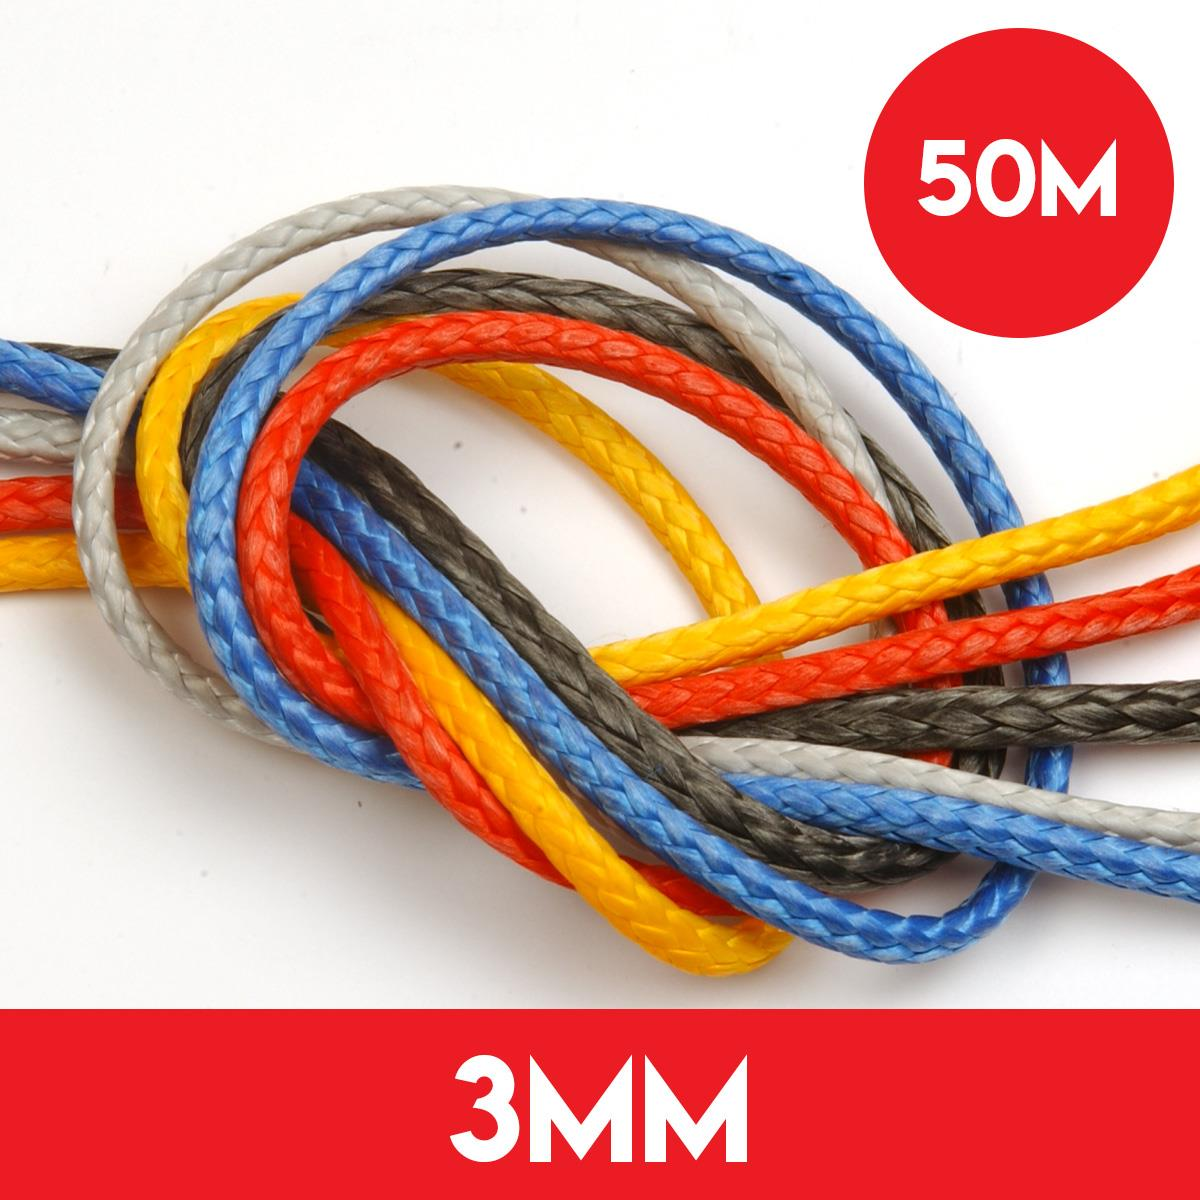 50m Reel of 3mm Dyneema SK78